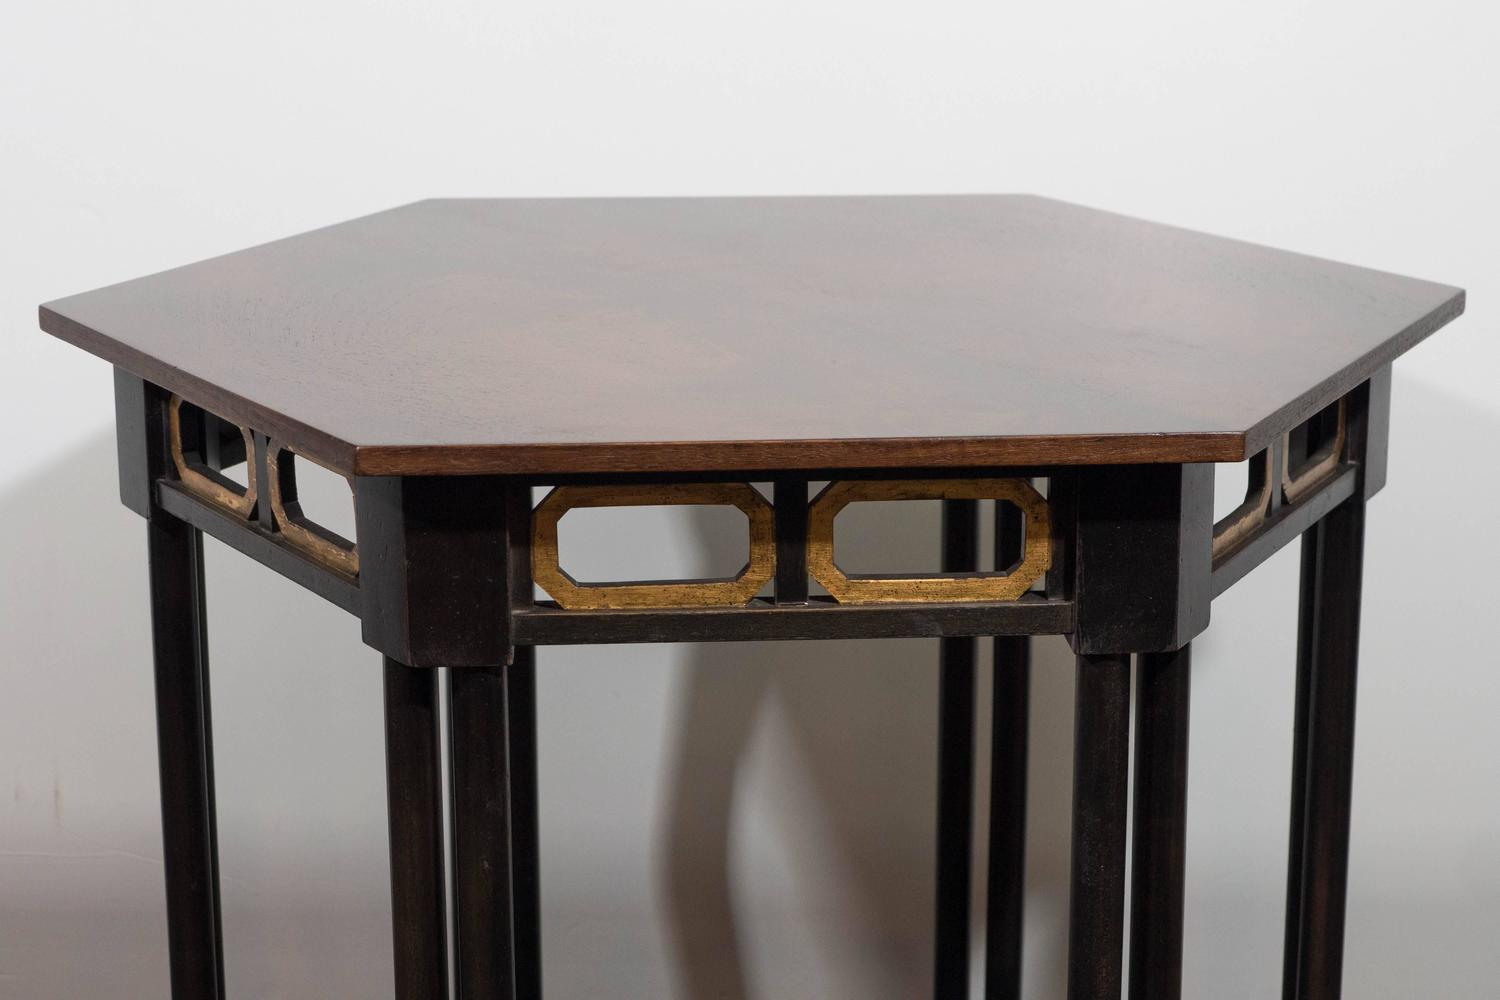 Pair Of Moorish Style Hexagonal Side Tables By Baker Furniture For Sale At 1stdibs